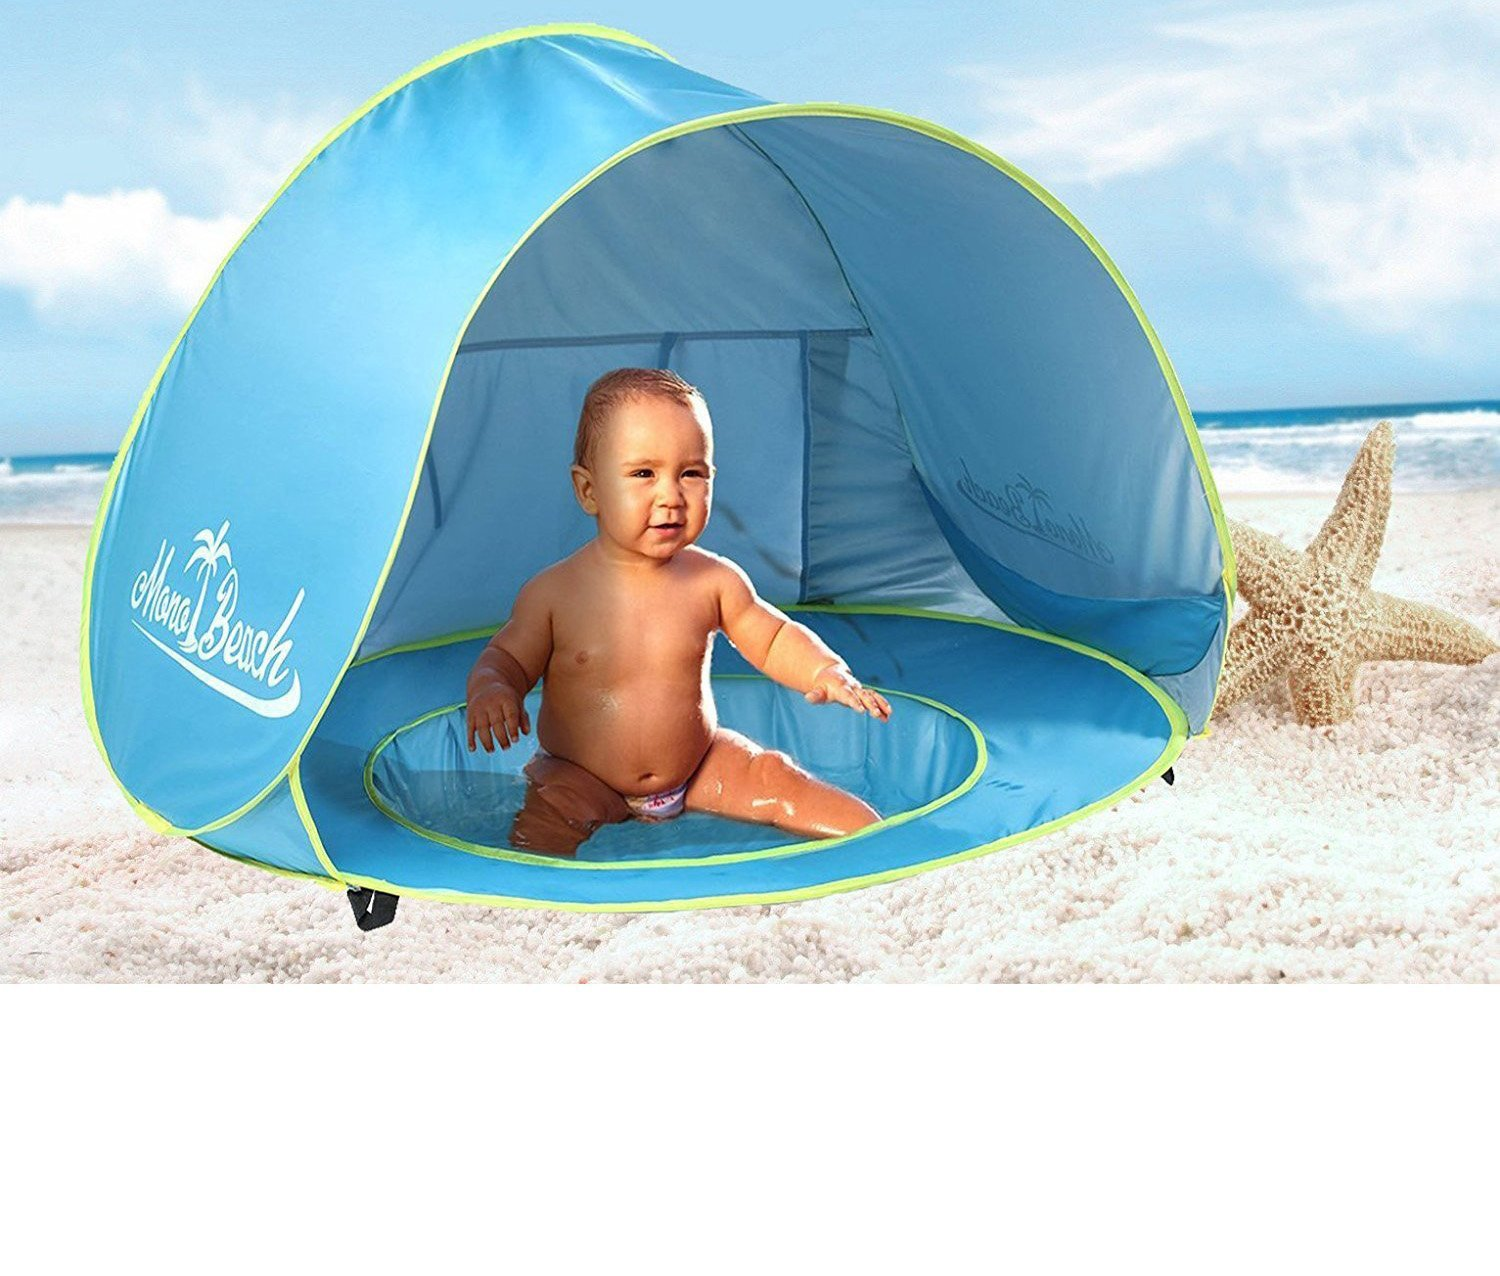 Monobeach Baby Beach Tent Pop Up Portable Shade Pool UV Protection Sun Shelter for Infant by Monobeach